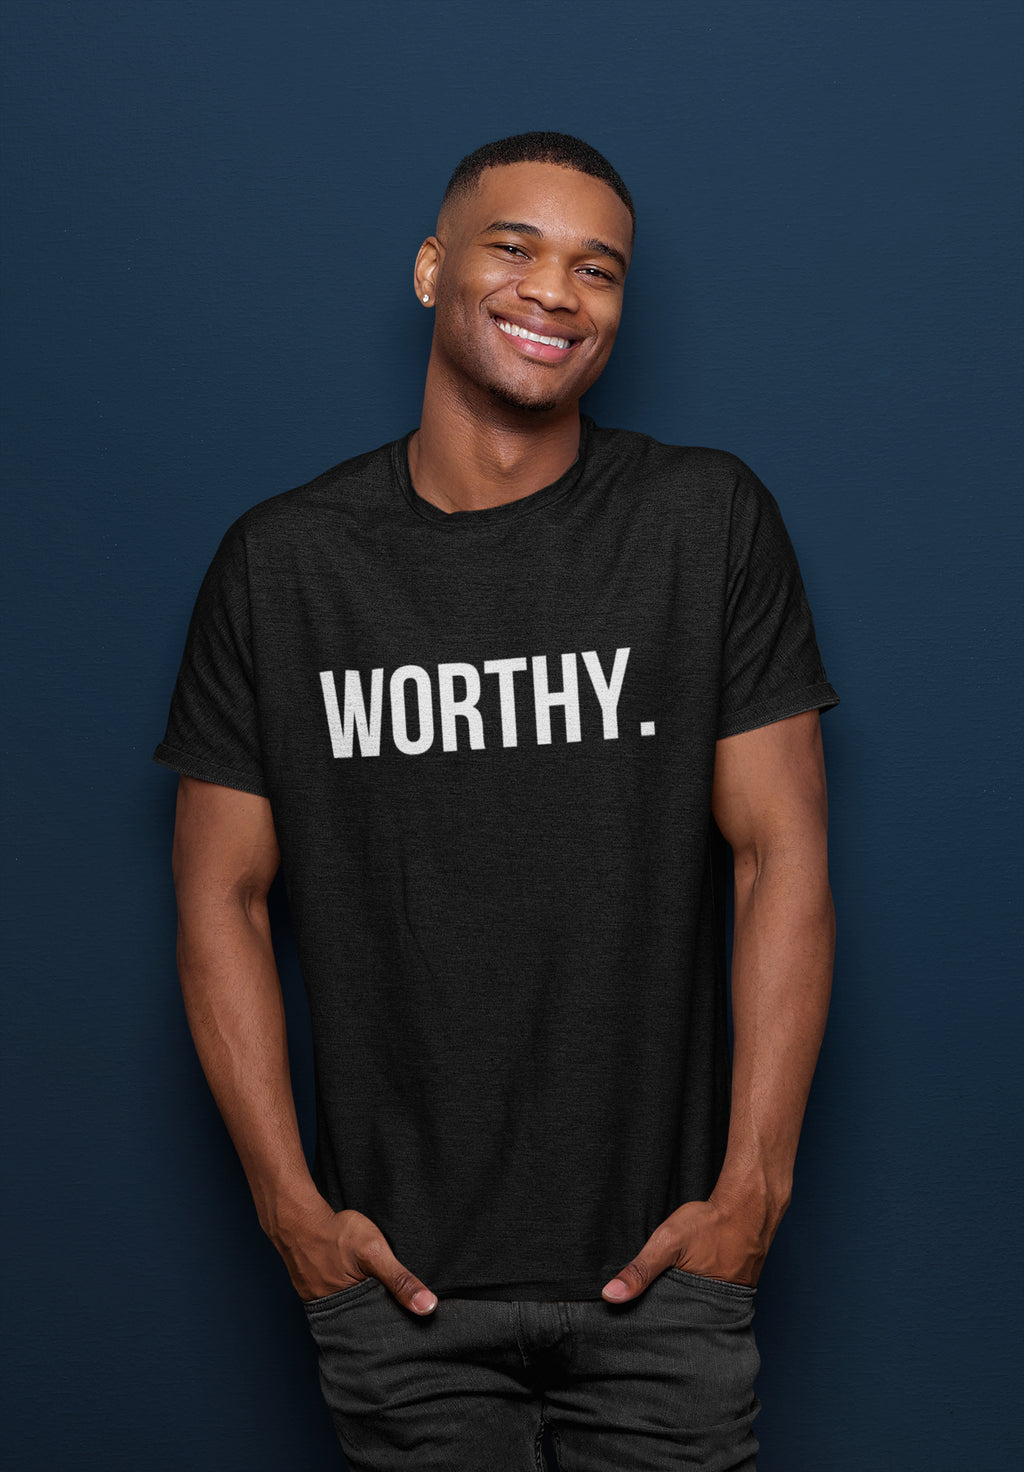 WORTHY BLACK SHORT SLEEVE T-SHIRT | UNISEX